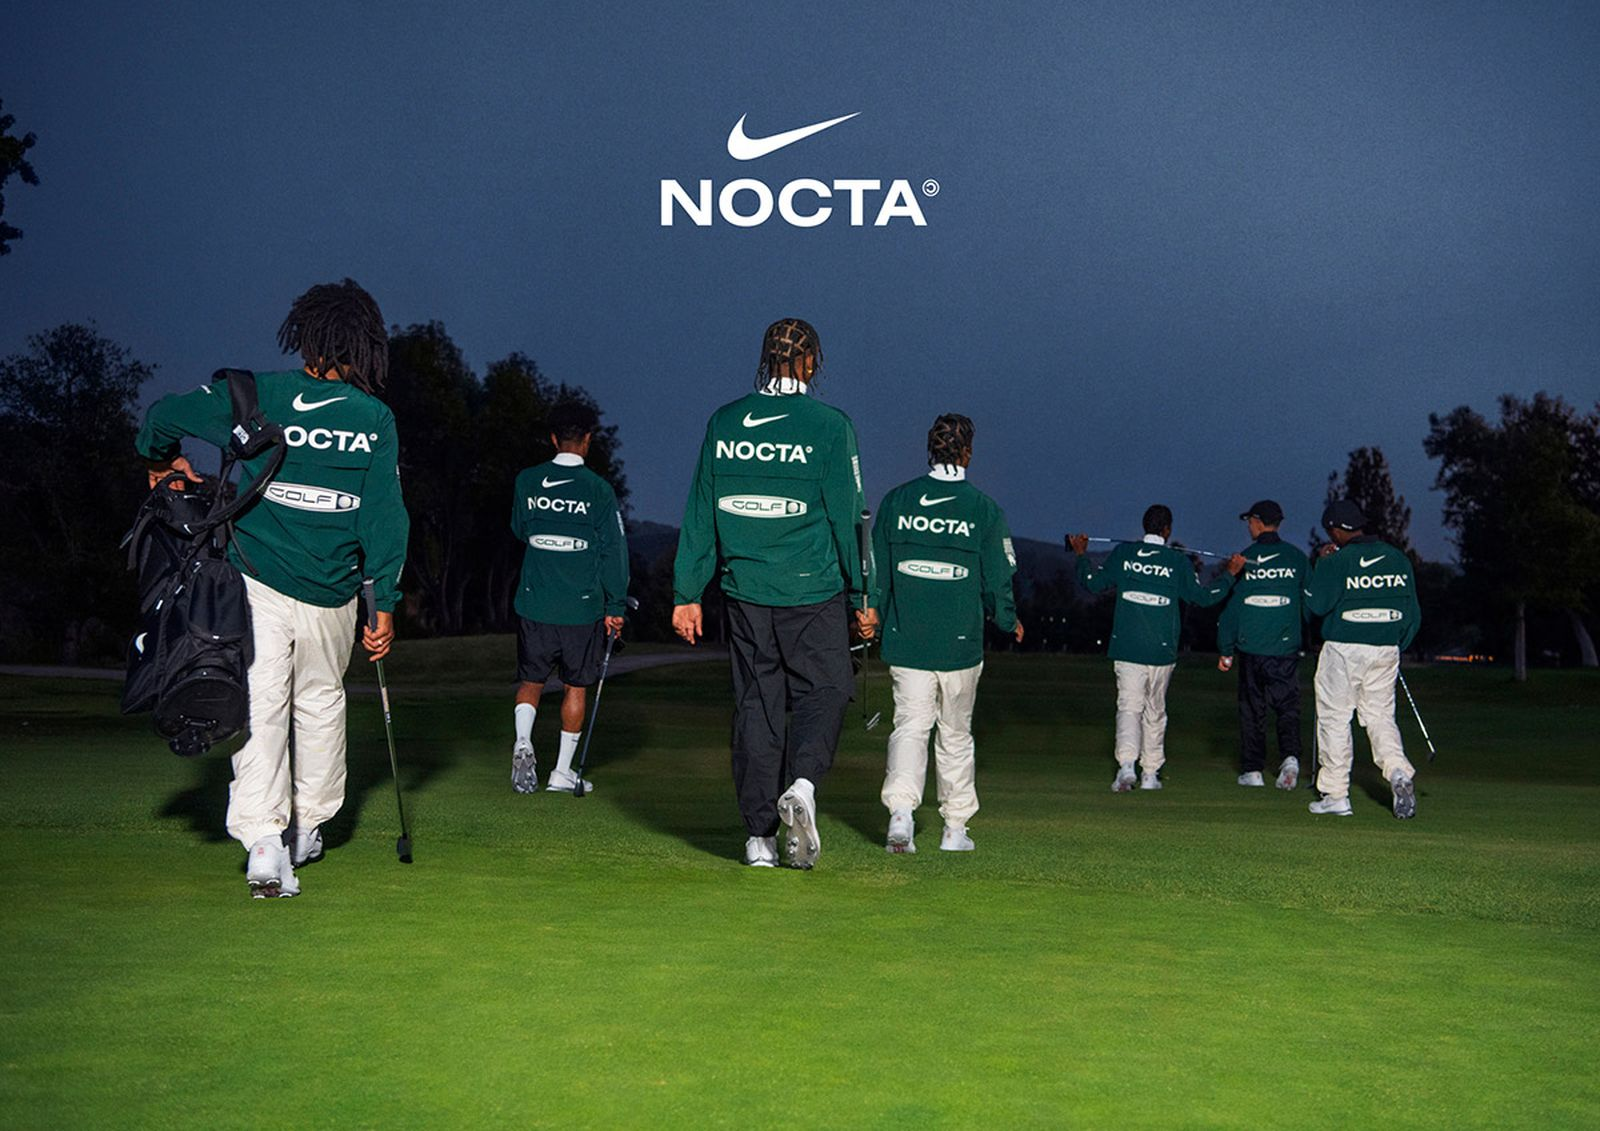 drake-nike-nocta-golf-collection-release-info-08